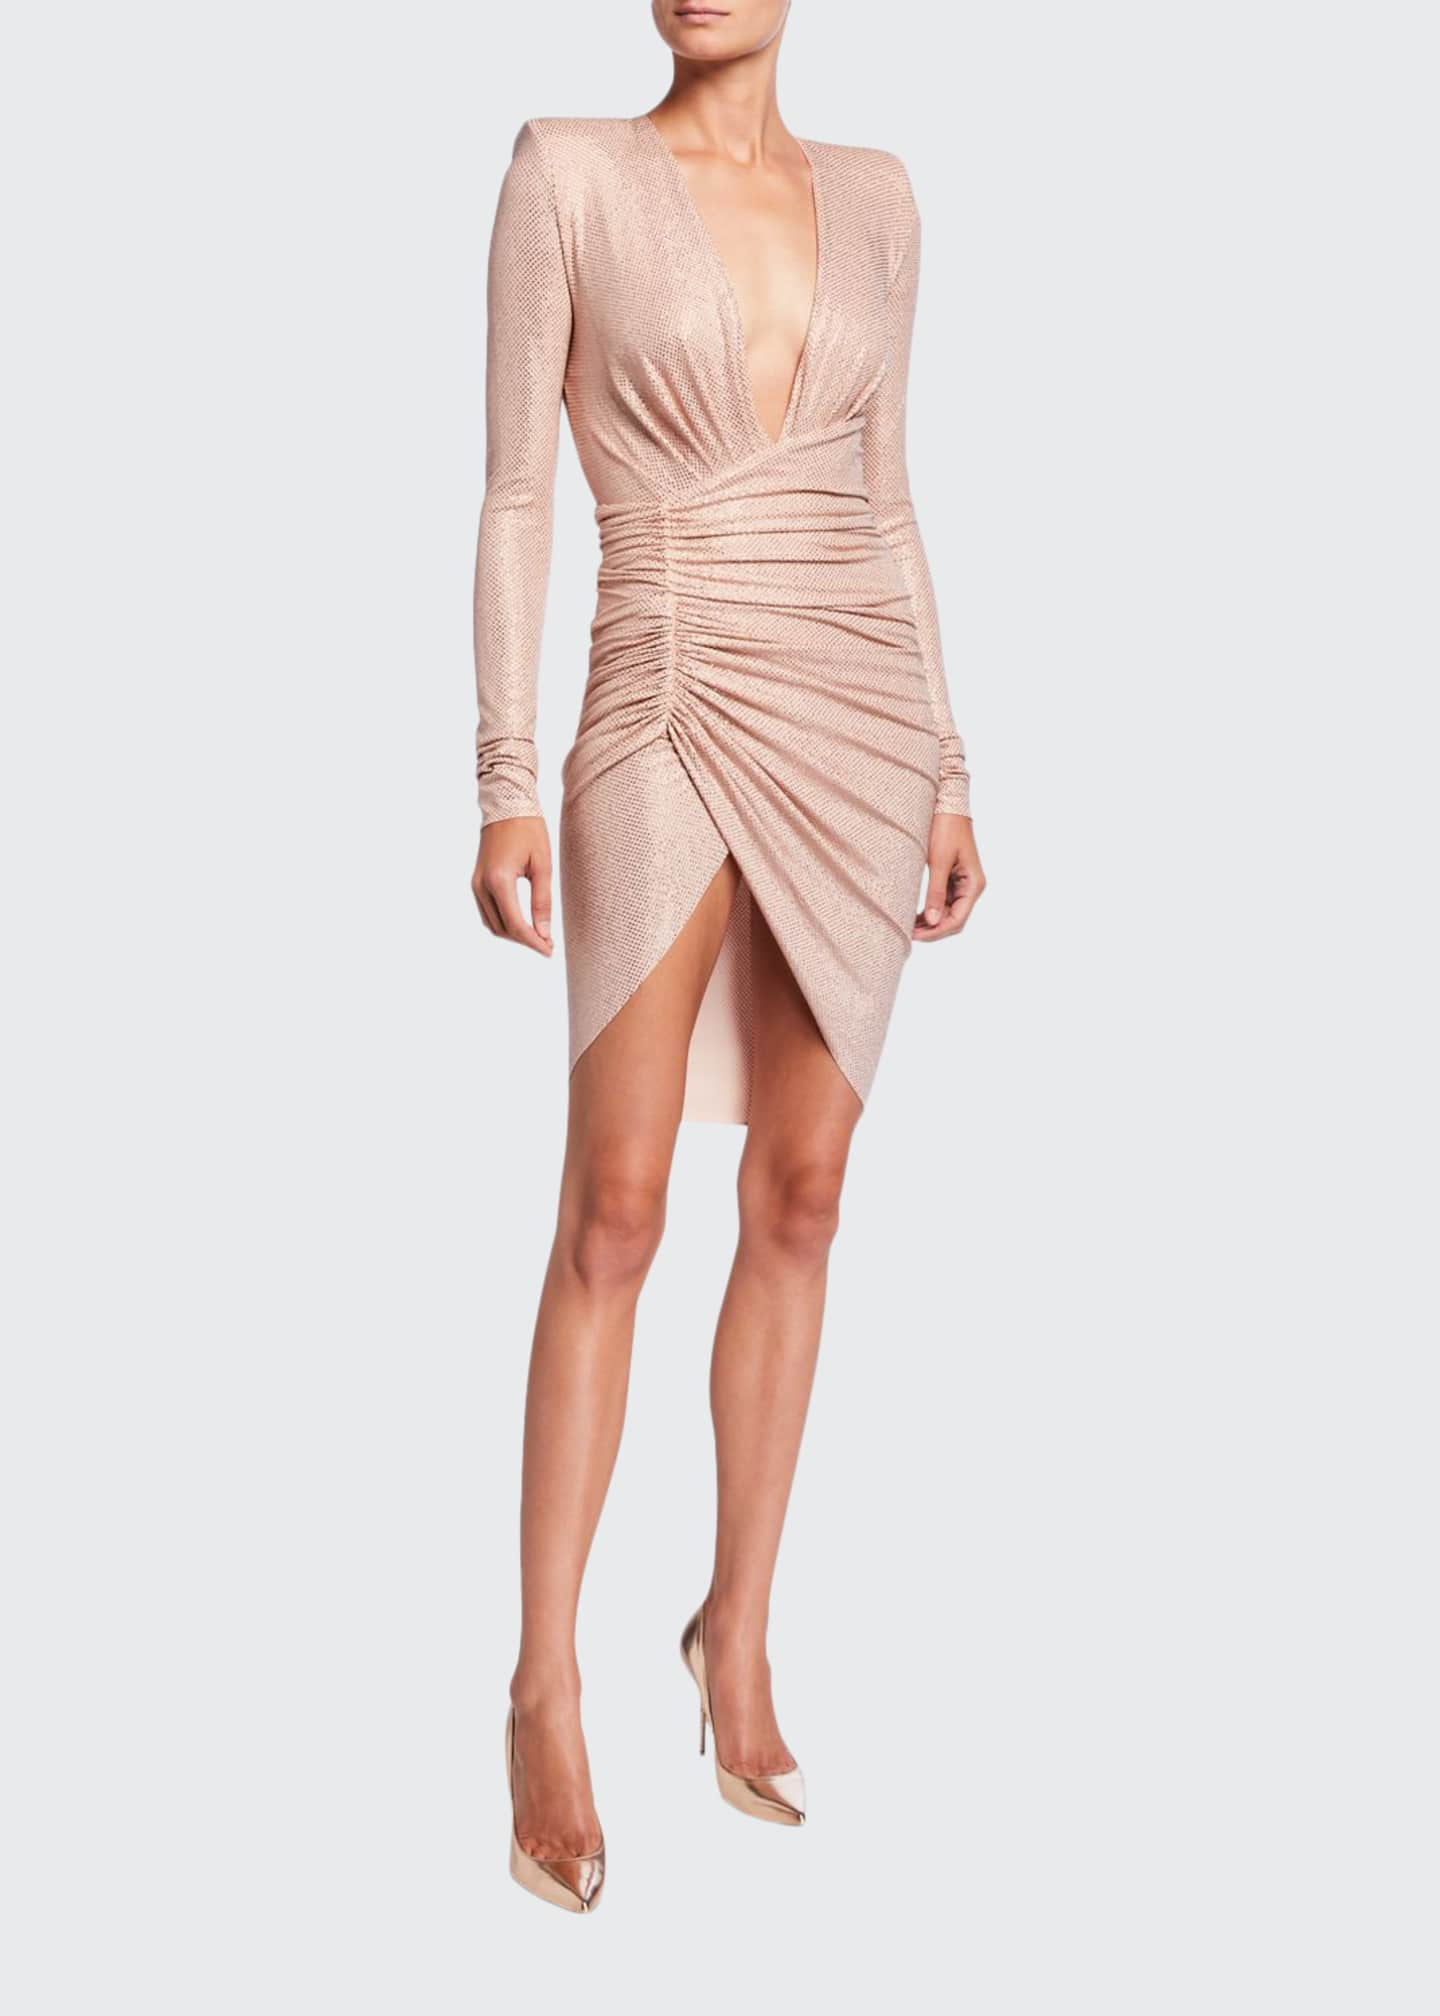 Alexandre Vauthier Micro-Crystal Deep-V Dress